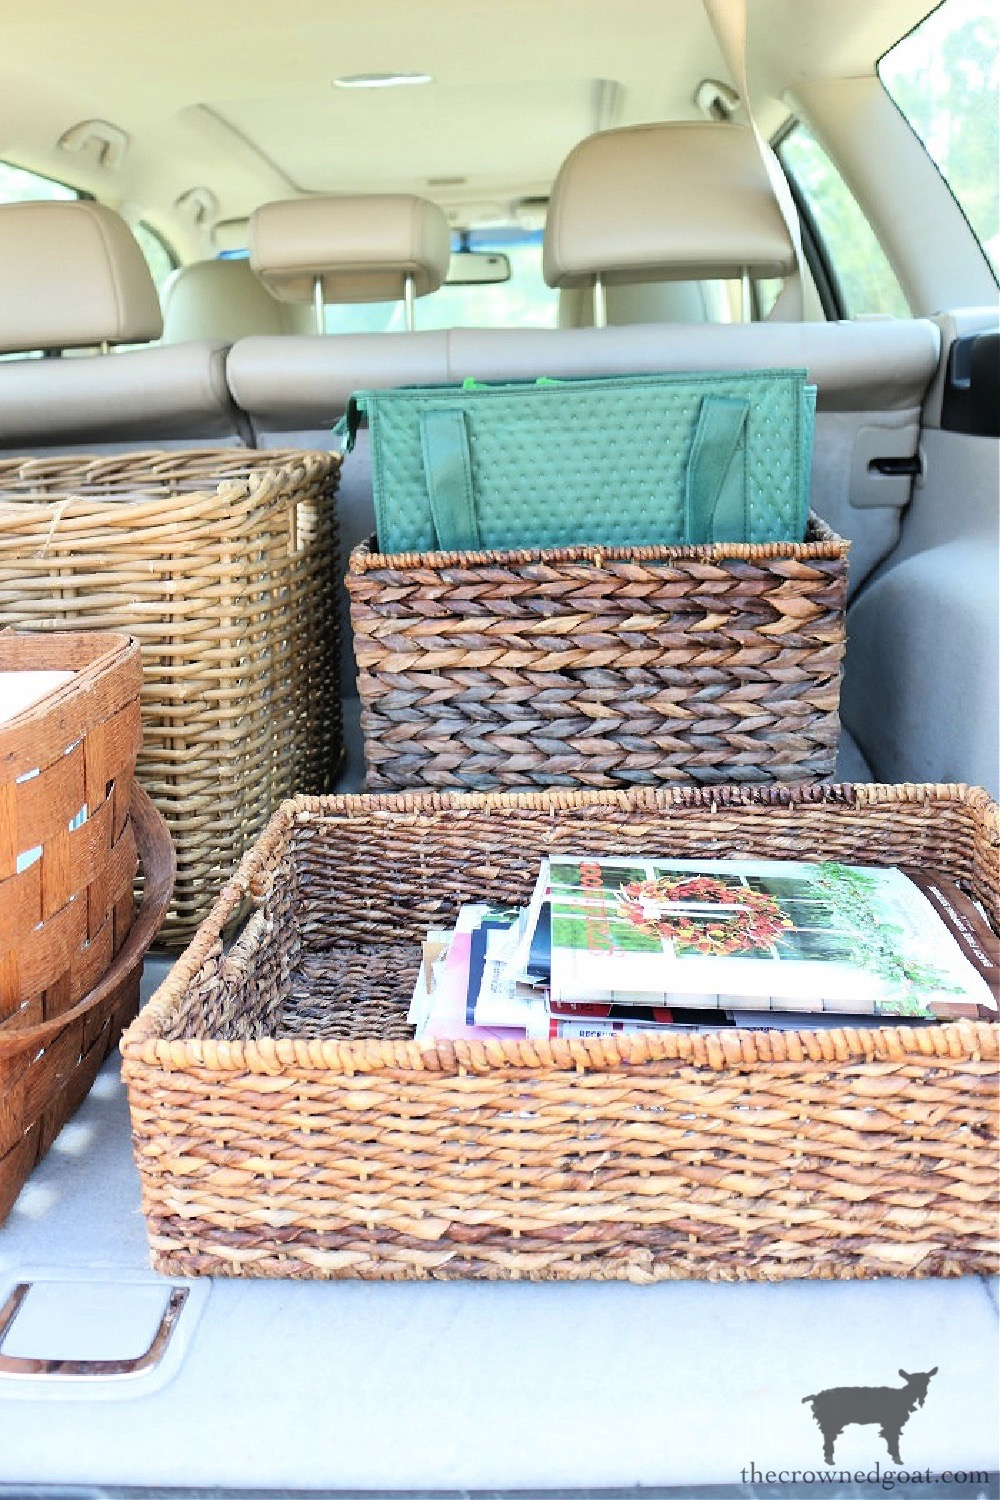 5 Key Spaces to Organize Before School Starts-Your Car-The Crowned Goat